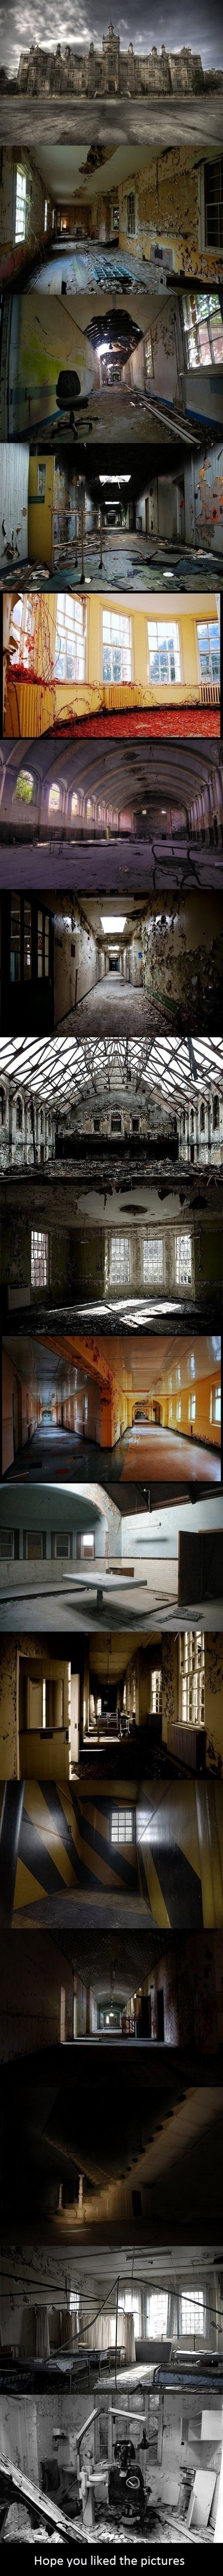 Creepy Mental Hospital Pictures